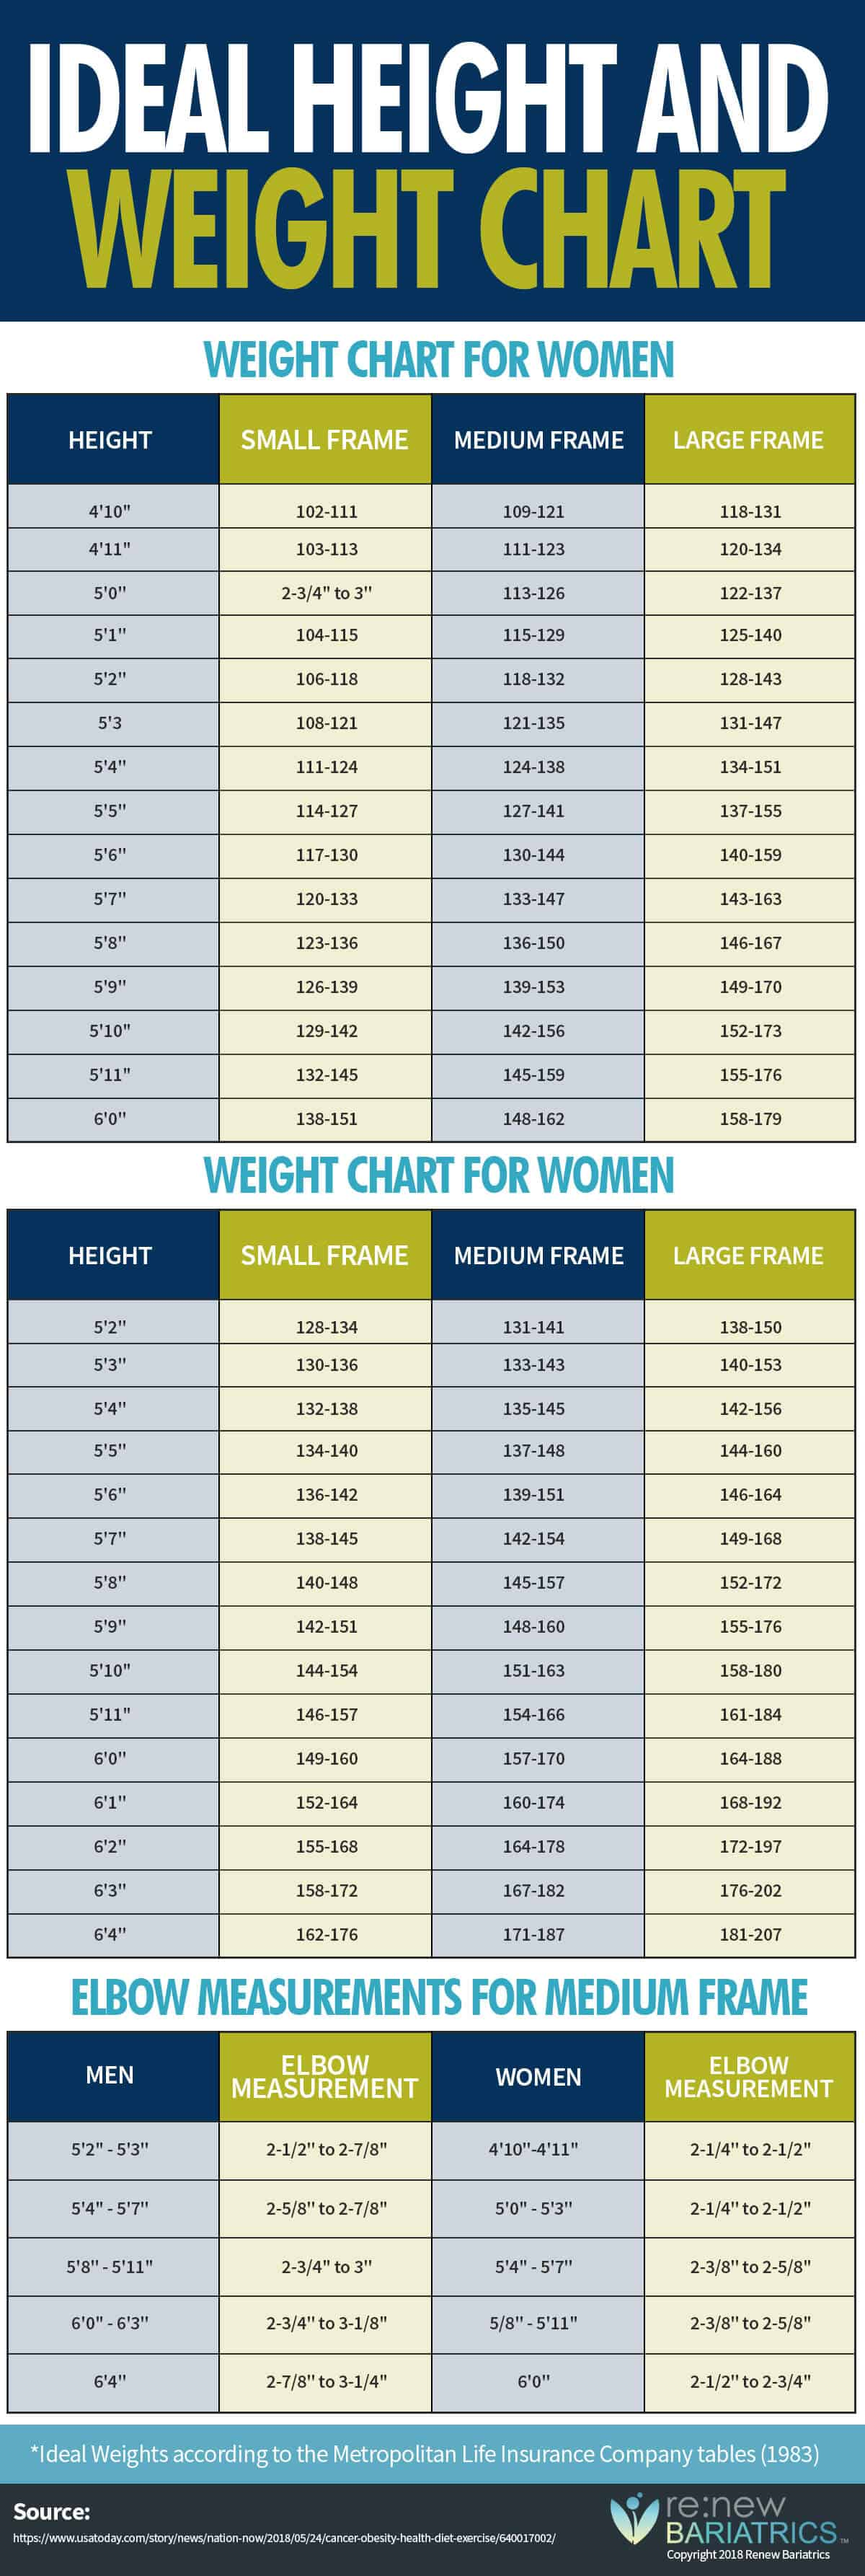 Ideal Male Height Weight Chart - Ideal height and weight